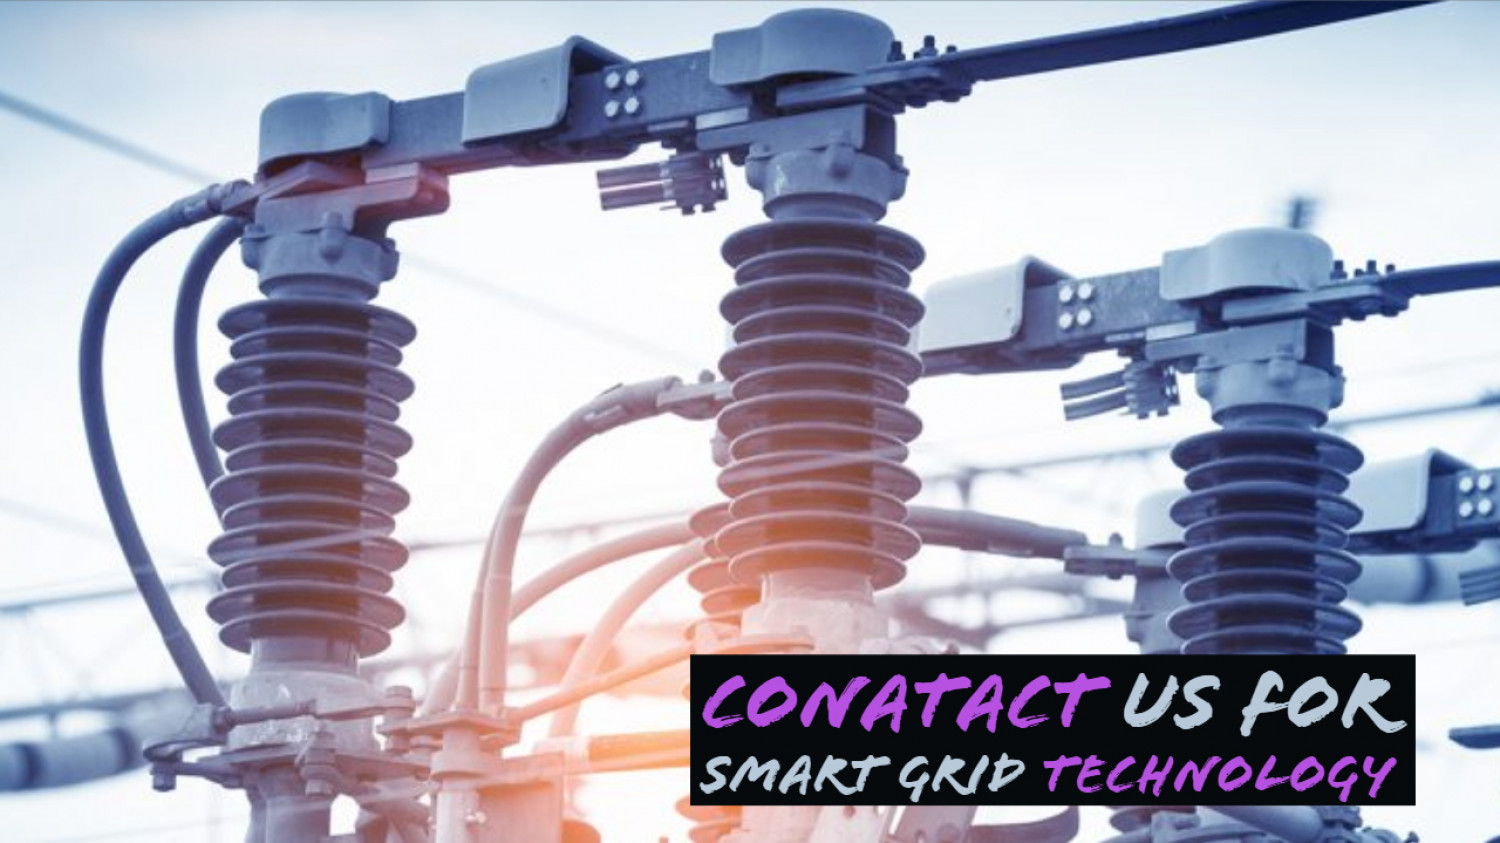 Conatact Us For Smart Grid Technology Infographic